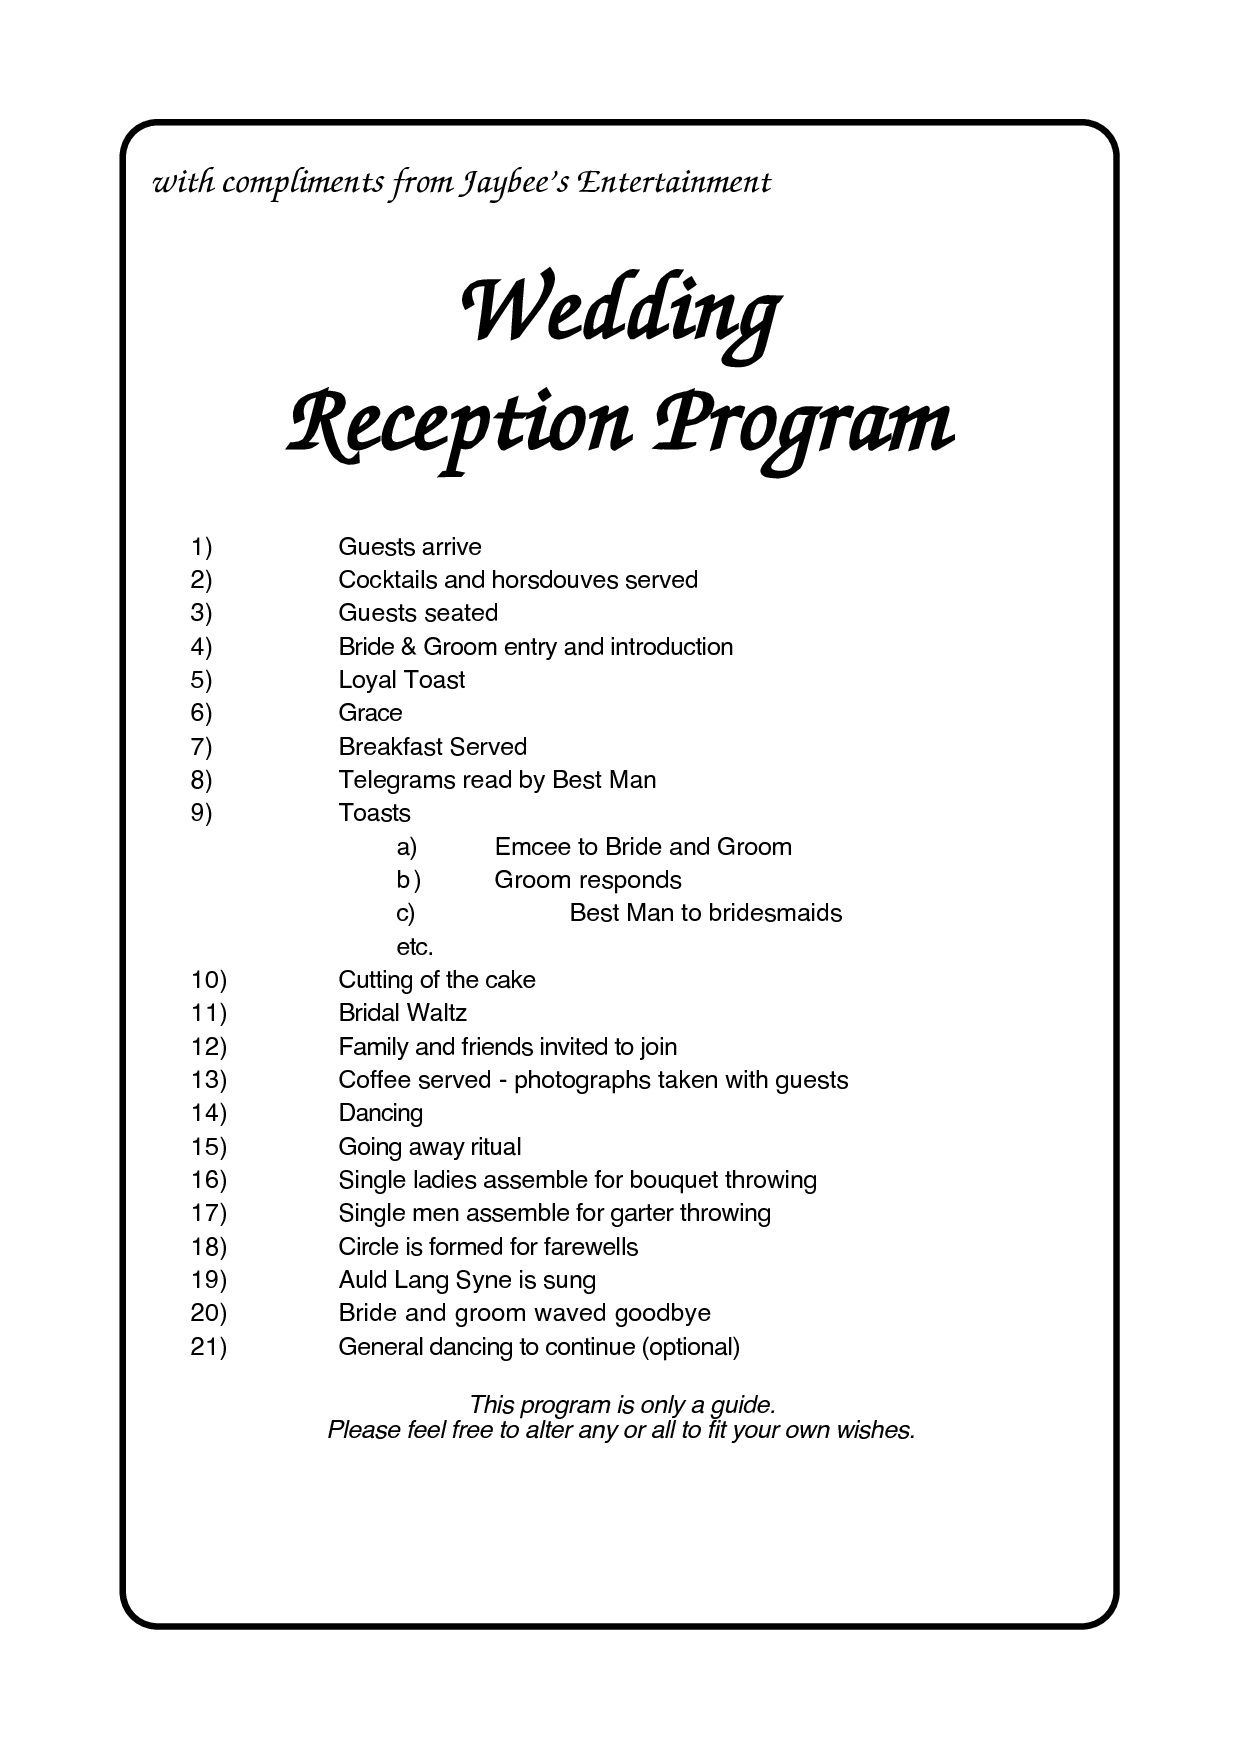 004 Exceptional Wedding Reception Program Template Photo  Templates Layout Free Download Ceremony AndFull